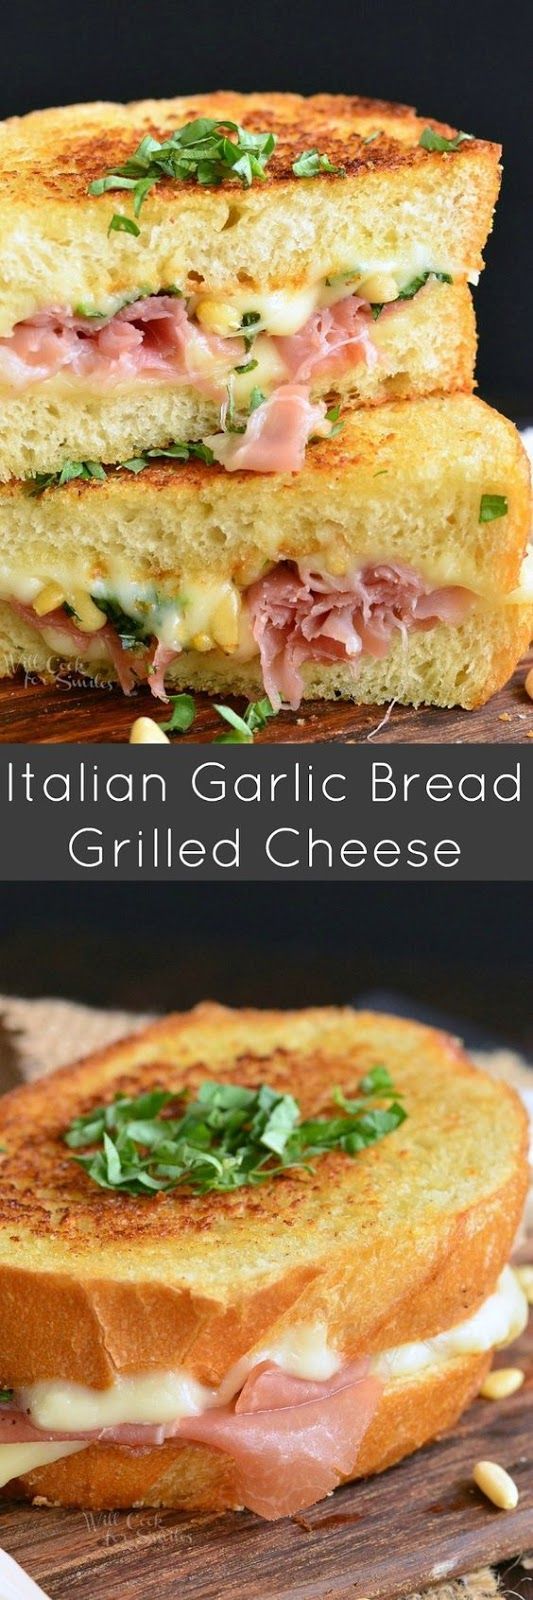 INGREDIENTS 2 slices of Italian bread 1¼ Tbsp salted butter, softened 1 large garlic clove 4 oz mozzarella cheese (block melt...